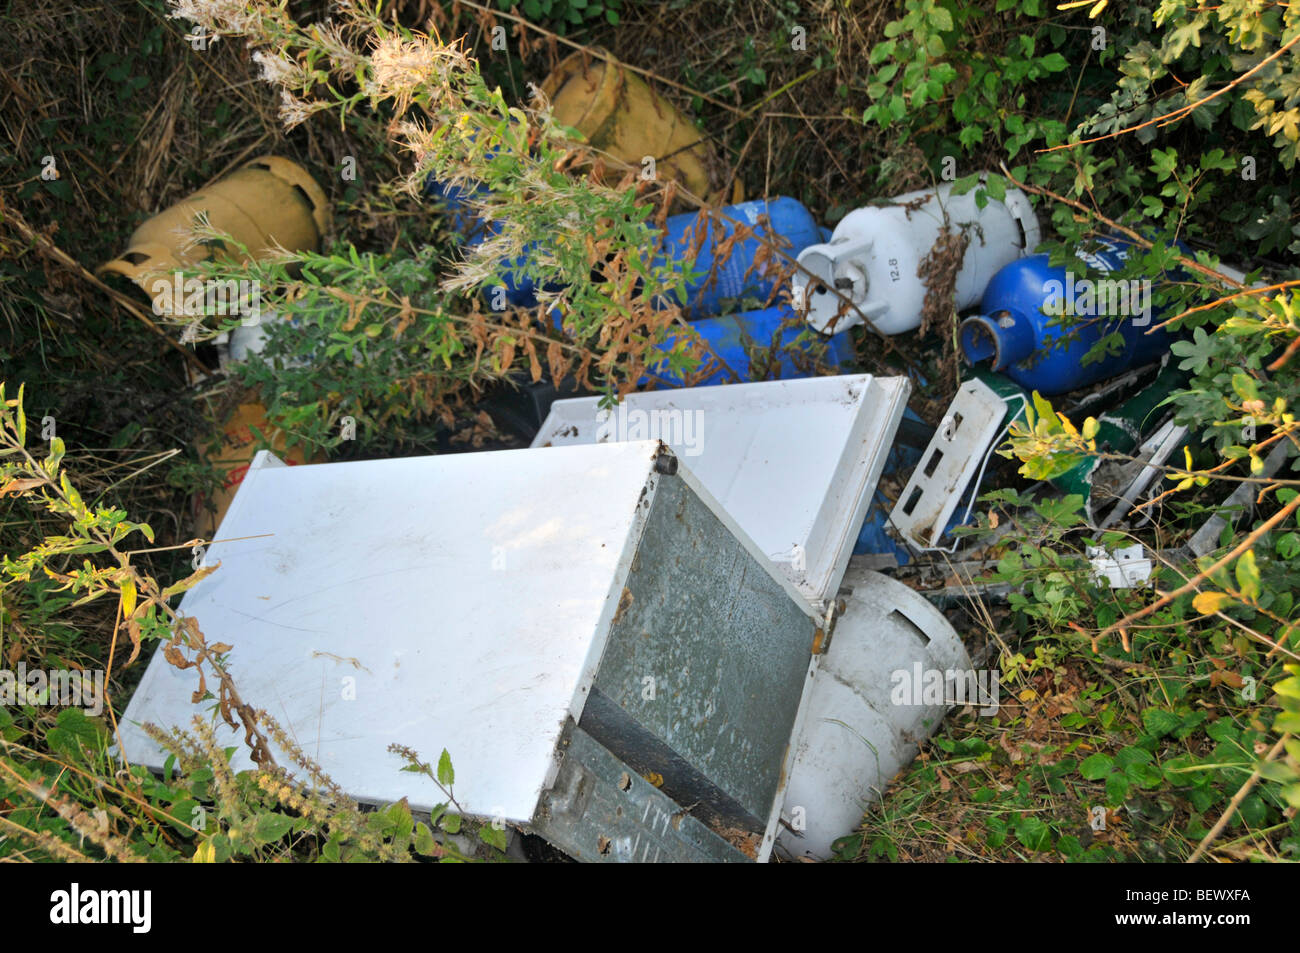 Fly tipping of butane propane gas bottles and old fridge in roadside drainage ditch - Stock Image